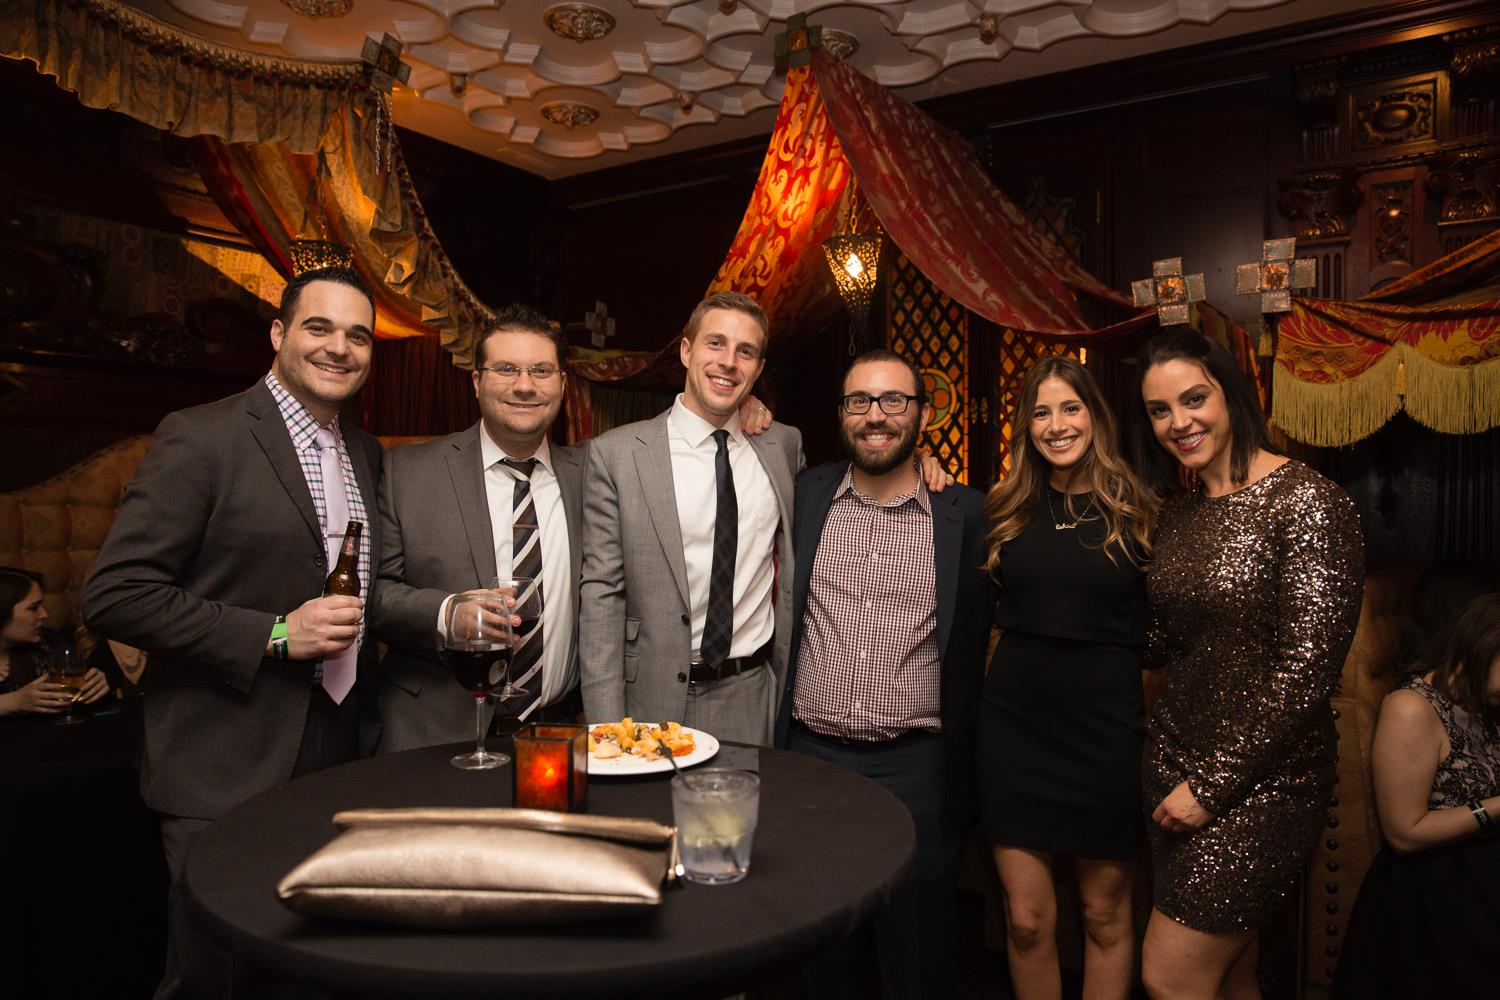 Third from left, Andrew takes a break from perfecting client SEO to enjoy some good times with his colleagues.